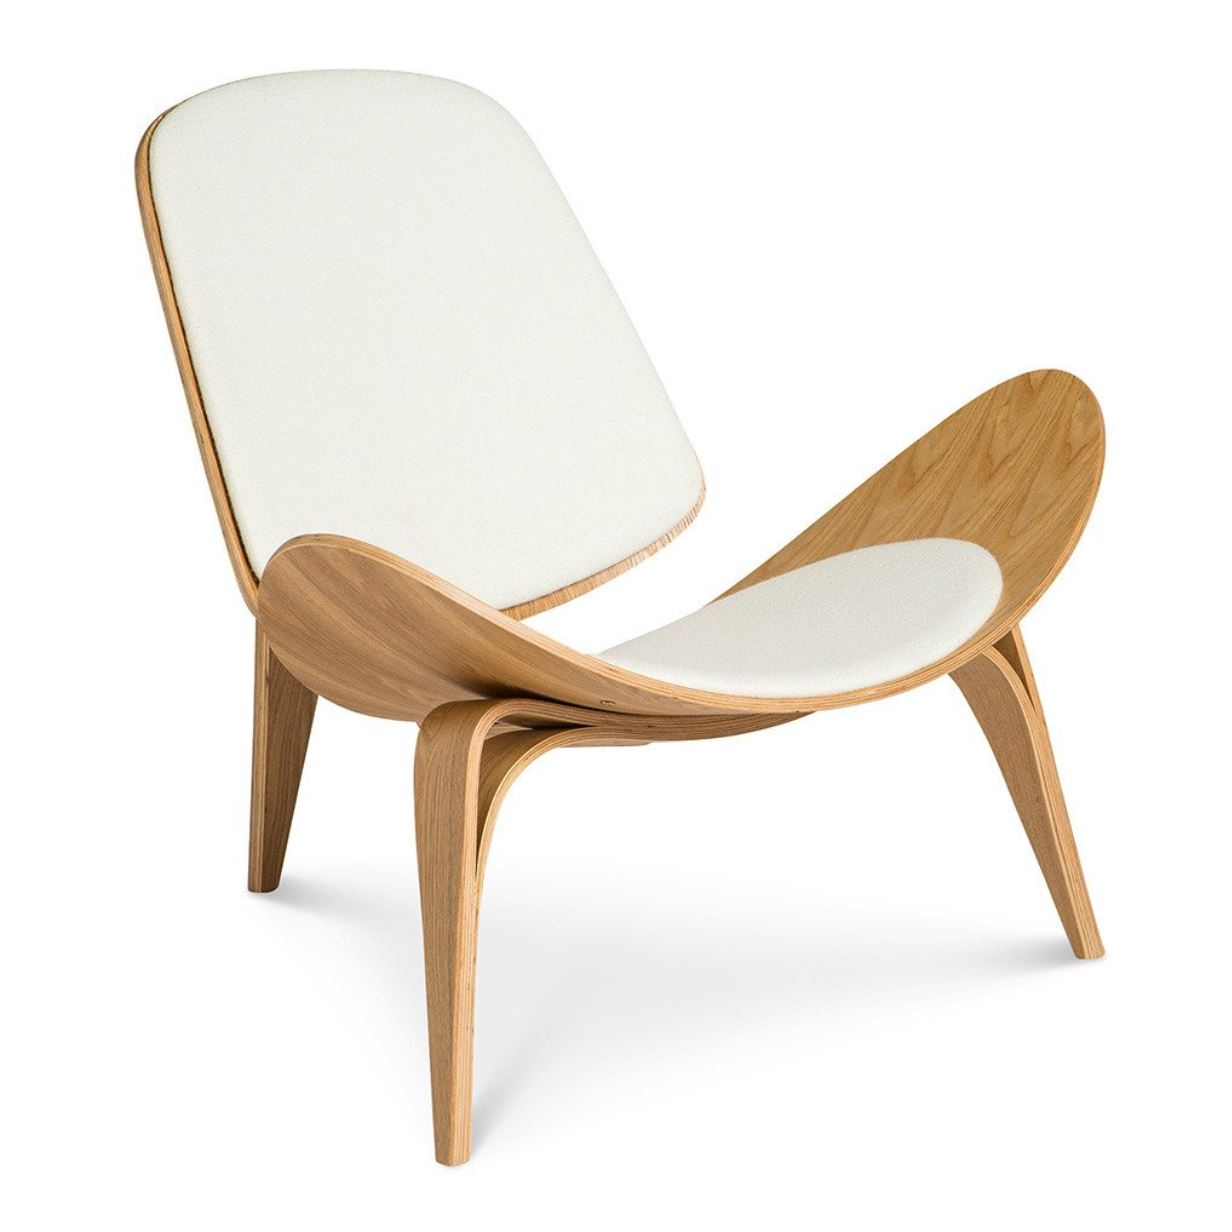 WEGNER CH07 SHELL CHAIR REPLICA - ALPINE SNOW + NATURAL by The Design Edit, a Chairs for sale on Style Sourcebook